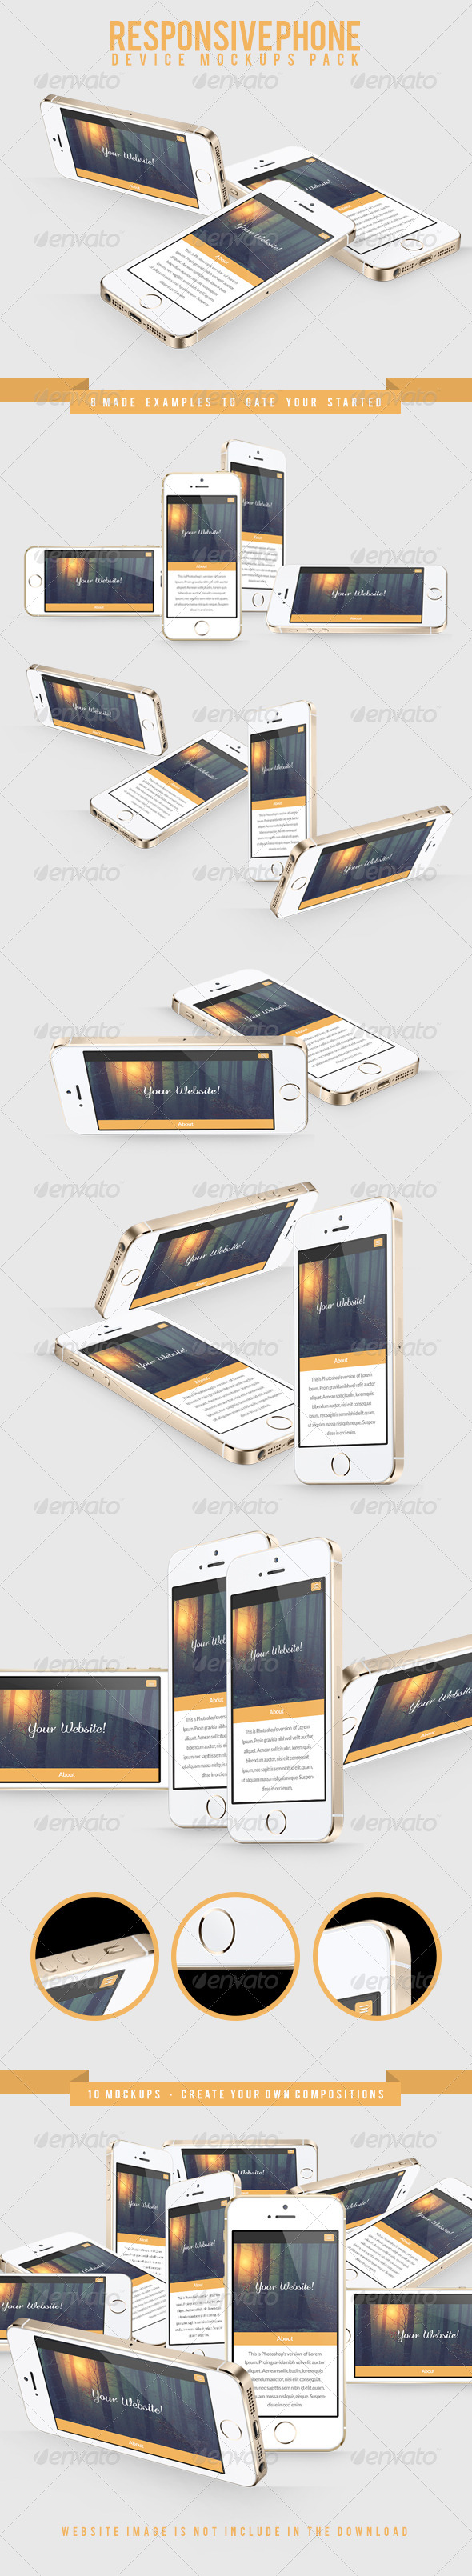 Responsive Phone Device Mockups Pack - Mobile Displays